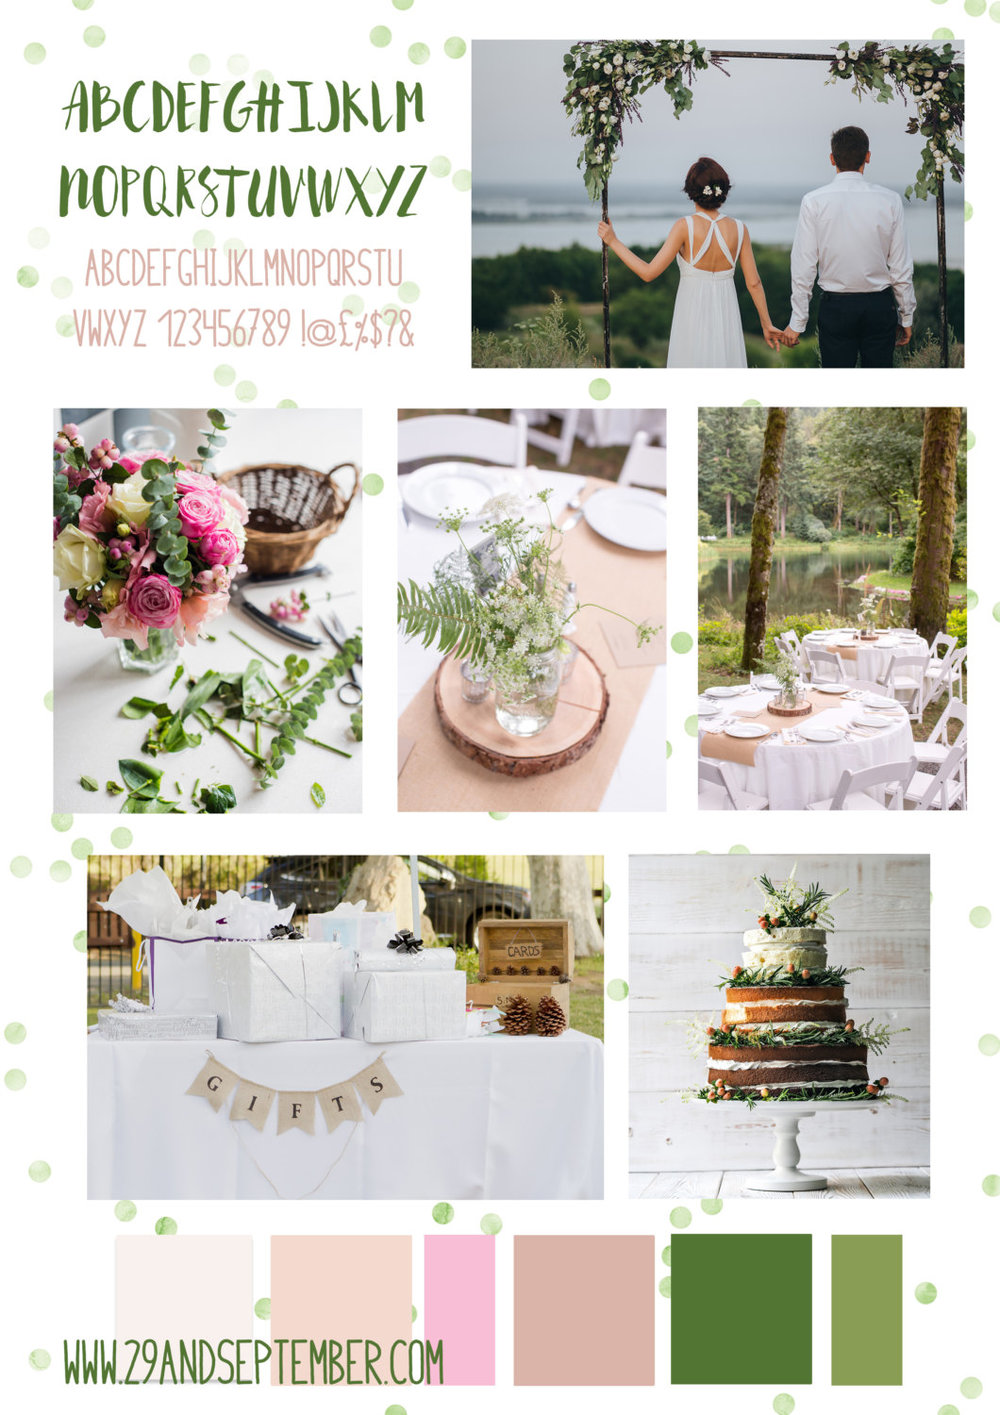 29&September wedding styling service